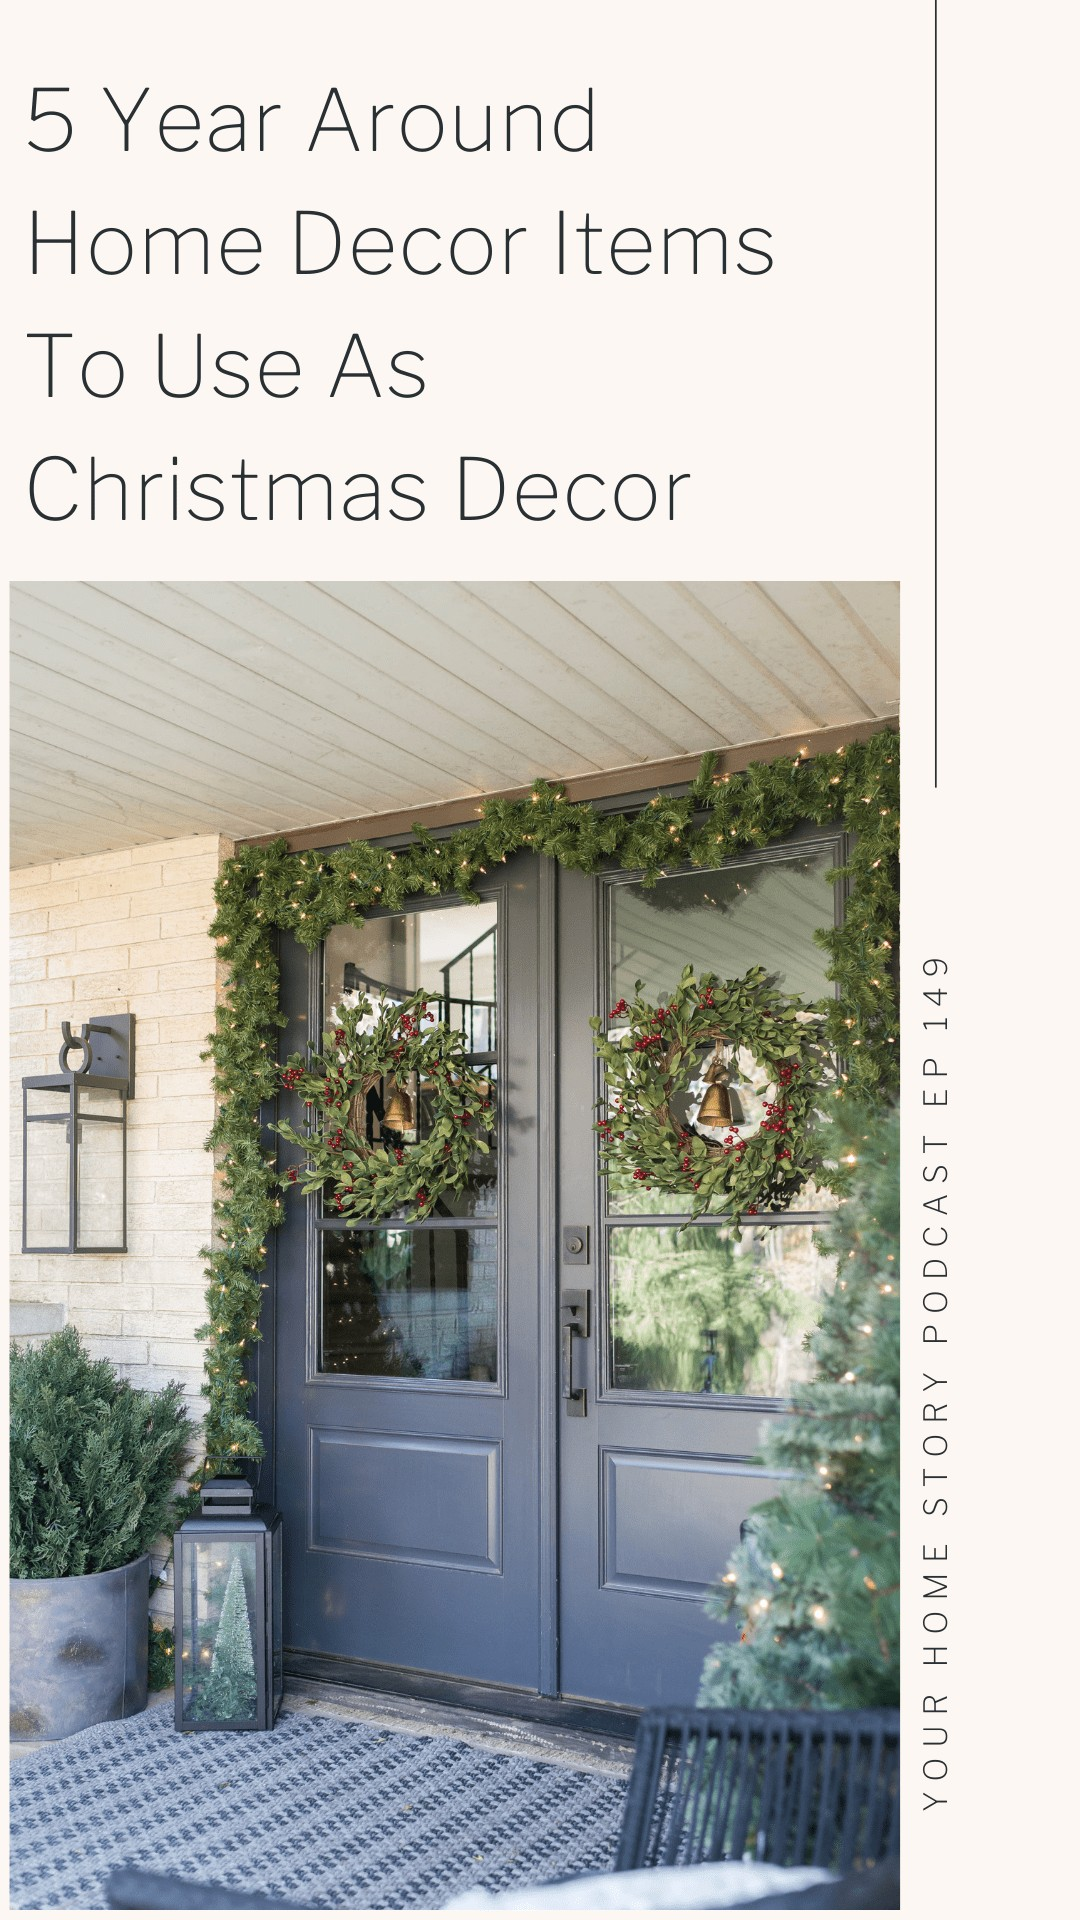 year around Christmas decor items showing a front porch with vintage glass bells in wreath